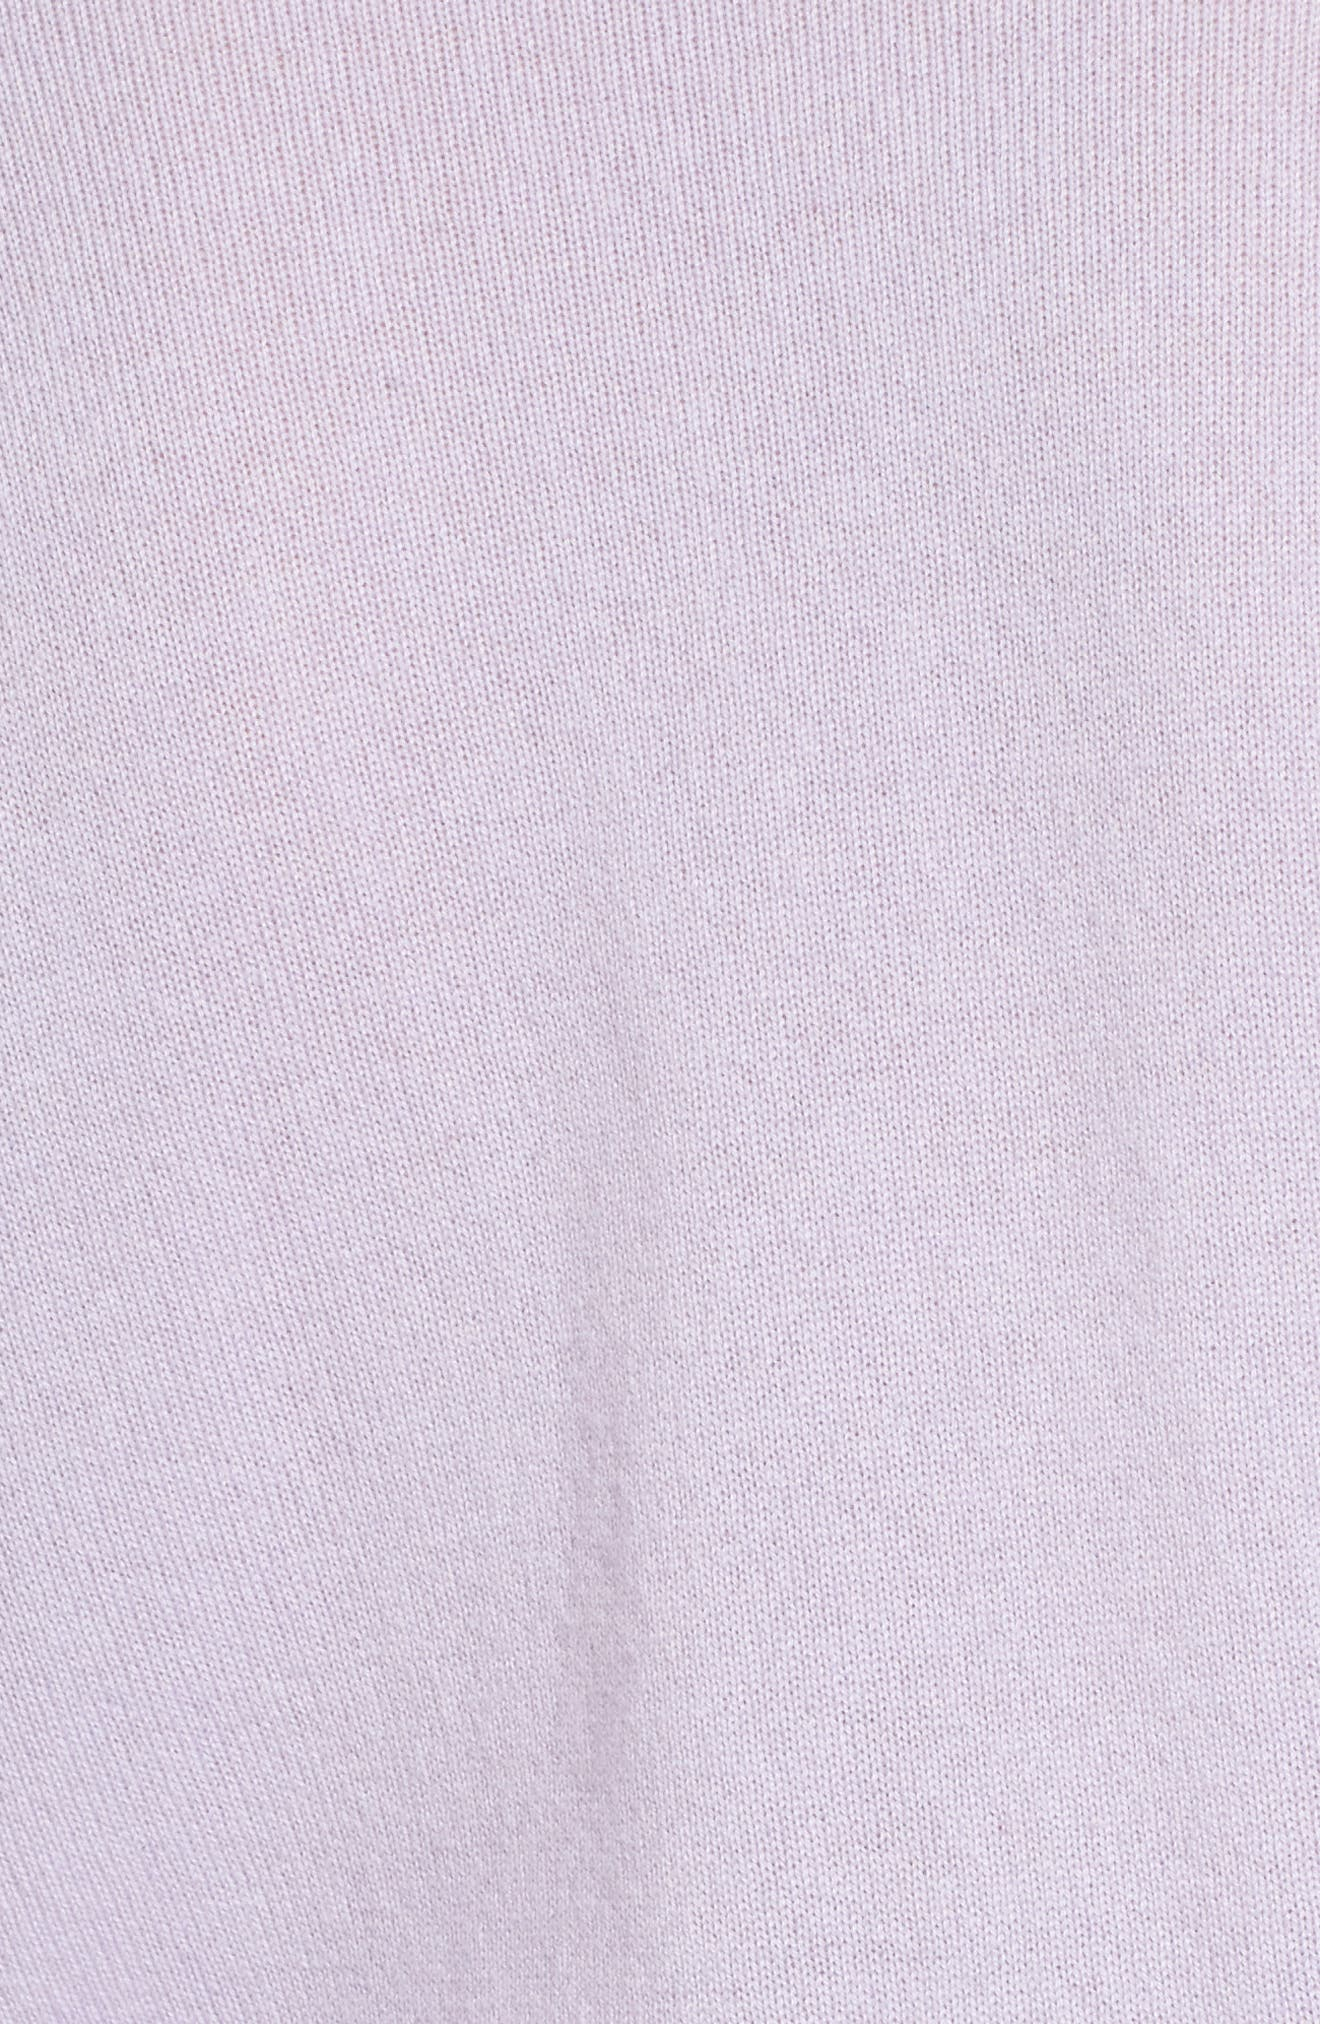 Ruffle Sleeve Cashmere Sweater,                             Alternate thumbnail 10, color,